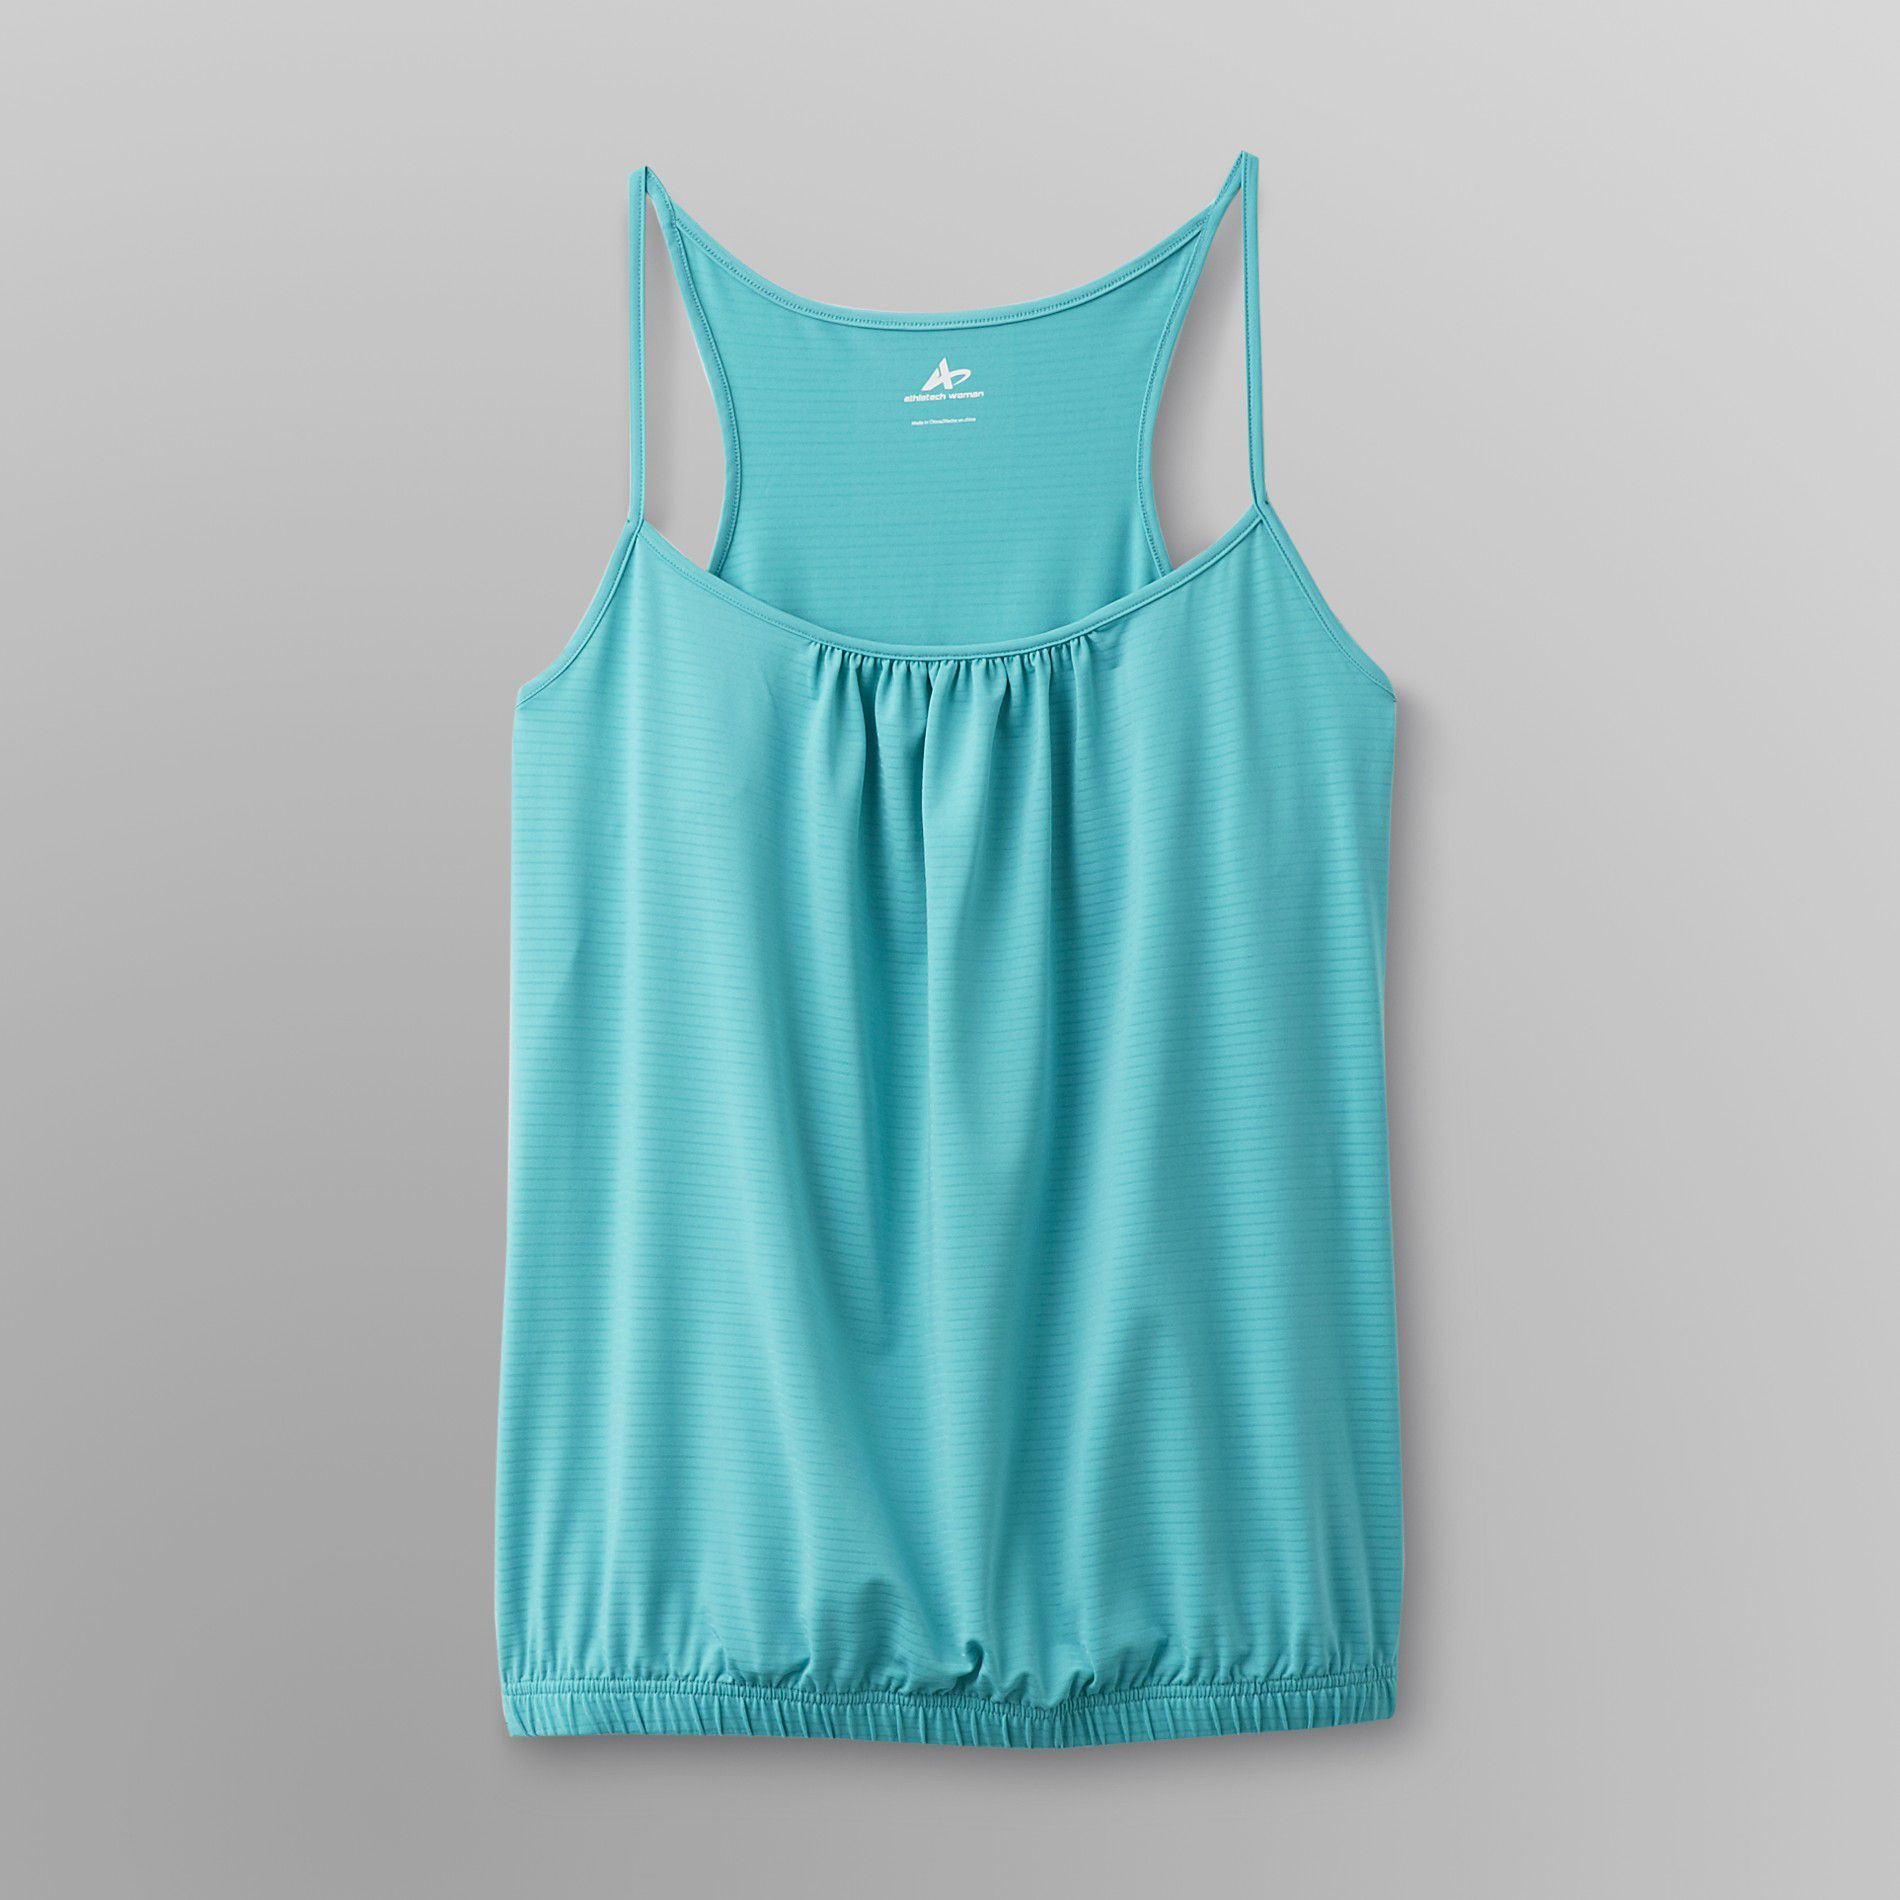 Athletech Women's Plus Performance Tank Top at Kmart.com